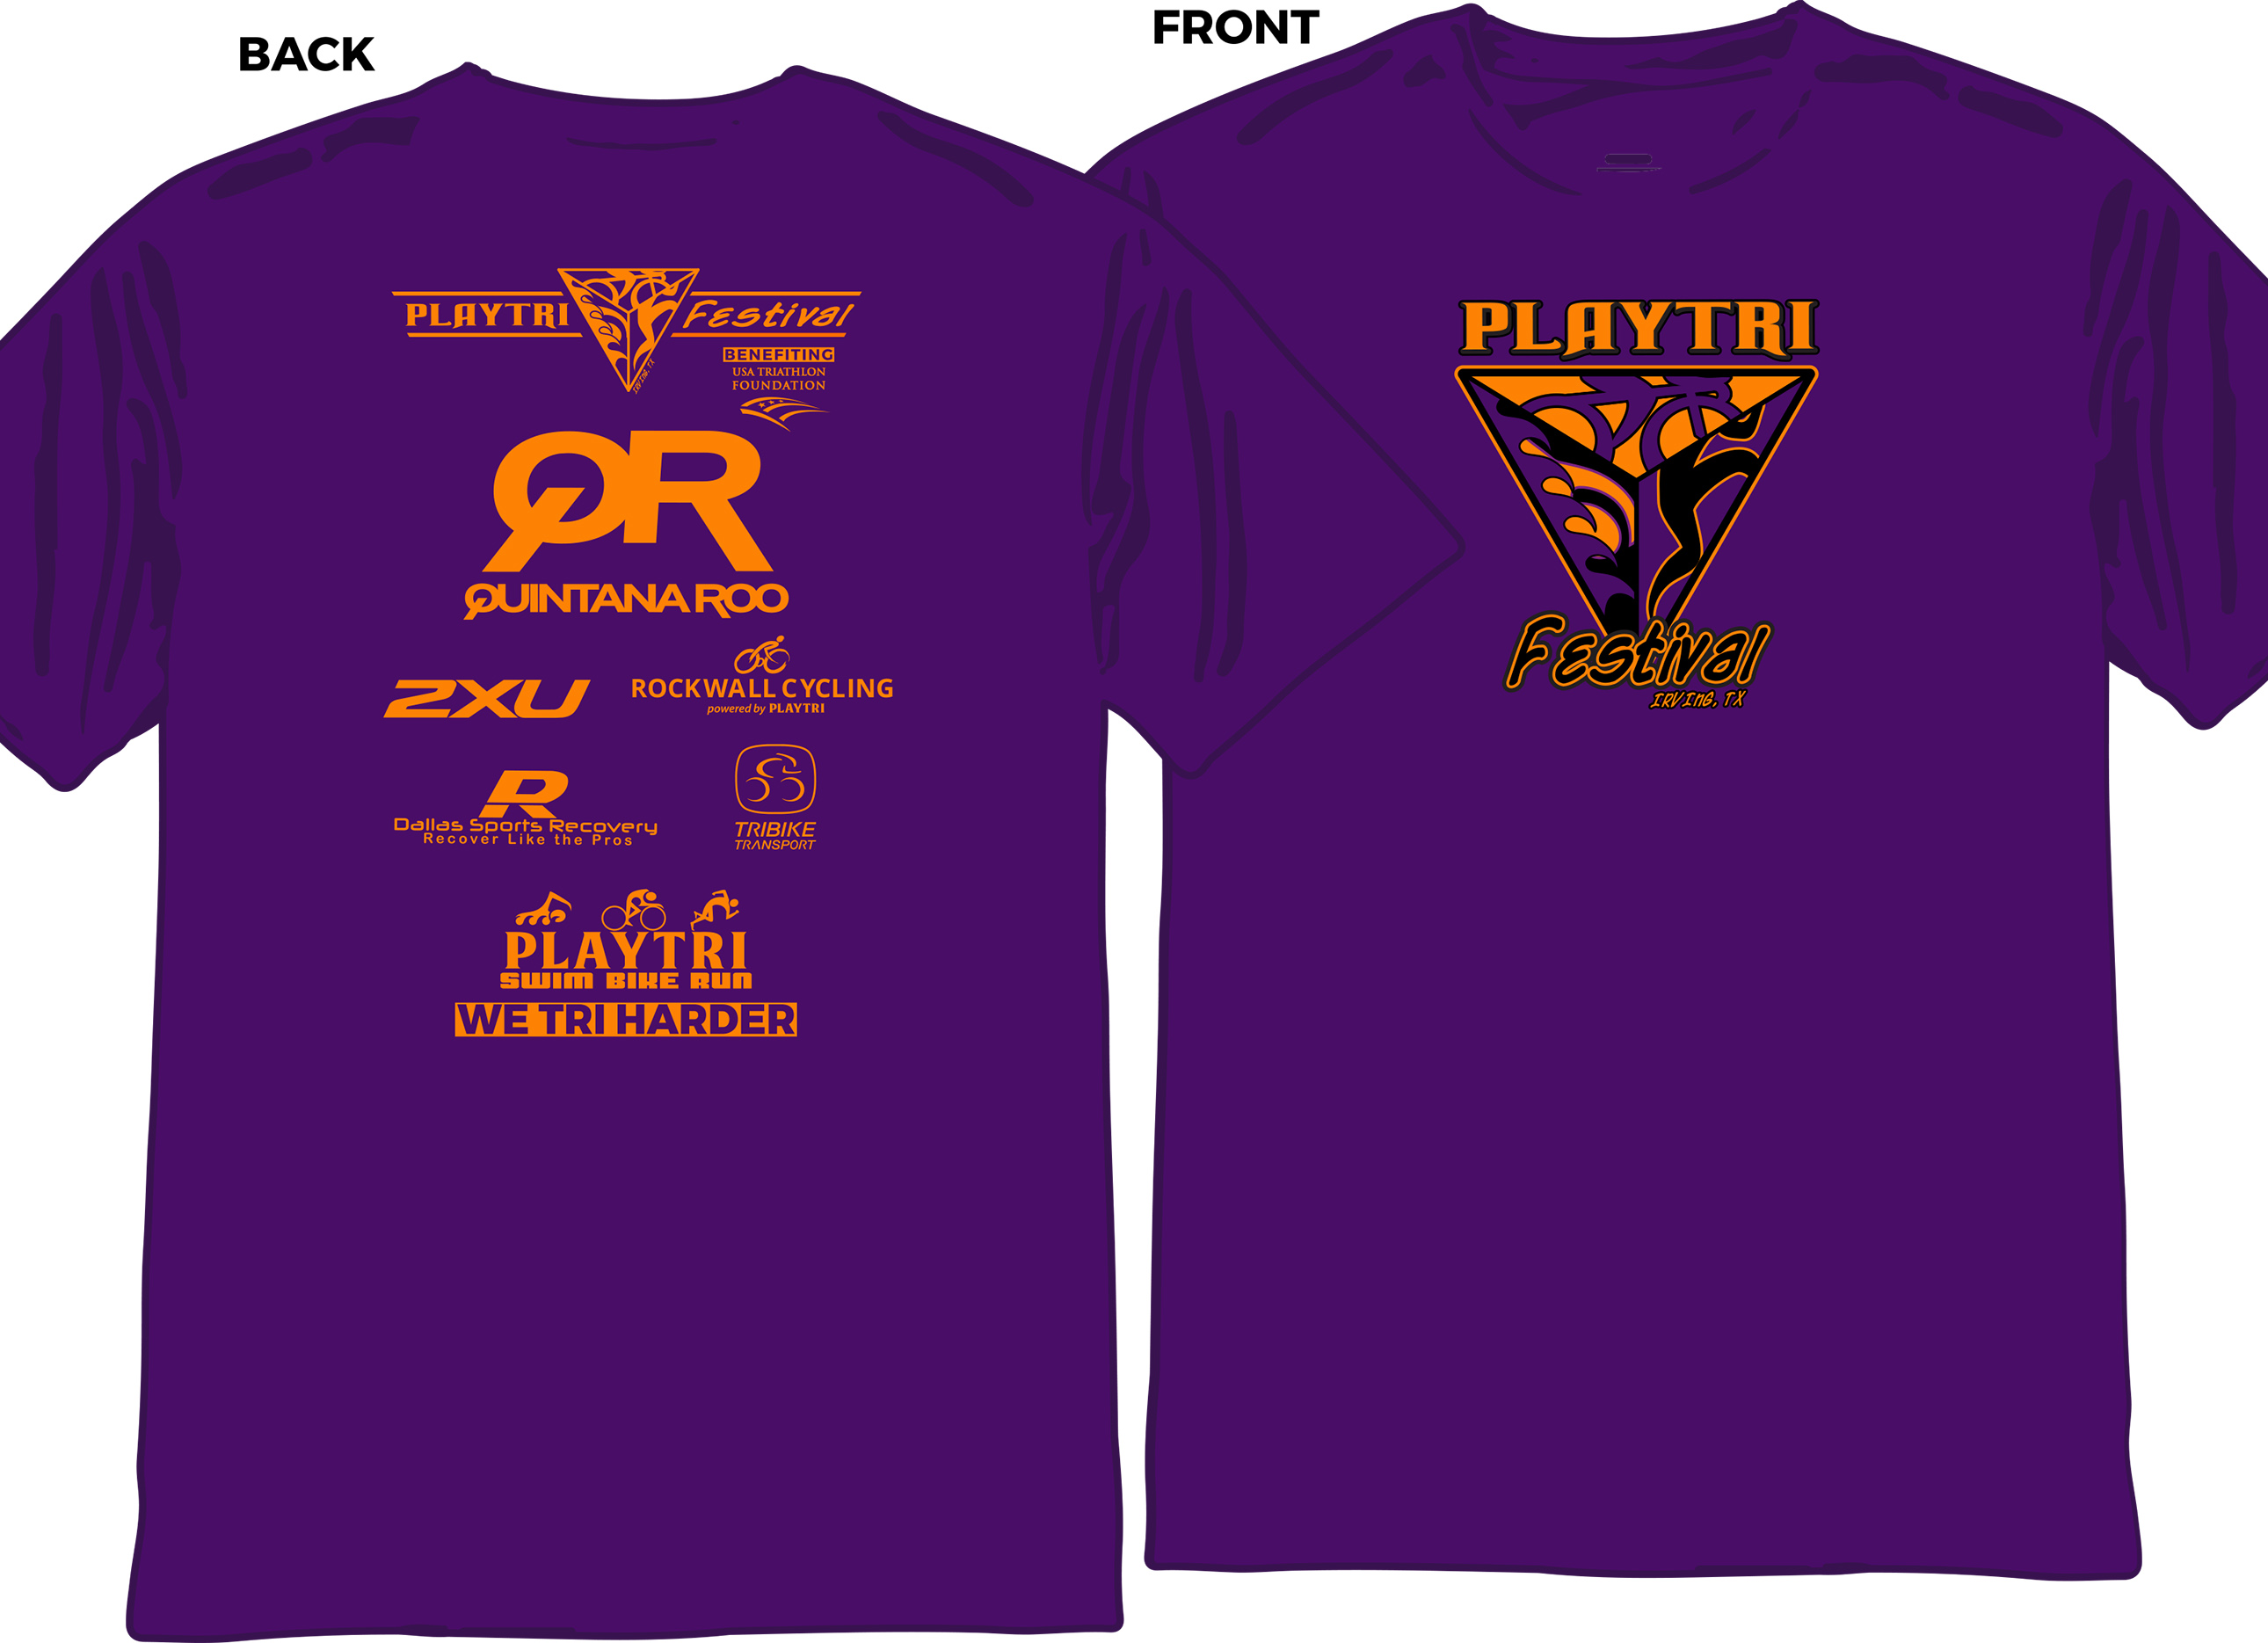 Playtri Festival Shirt